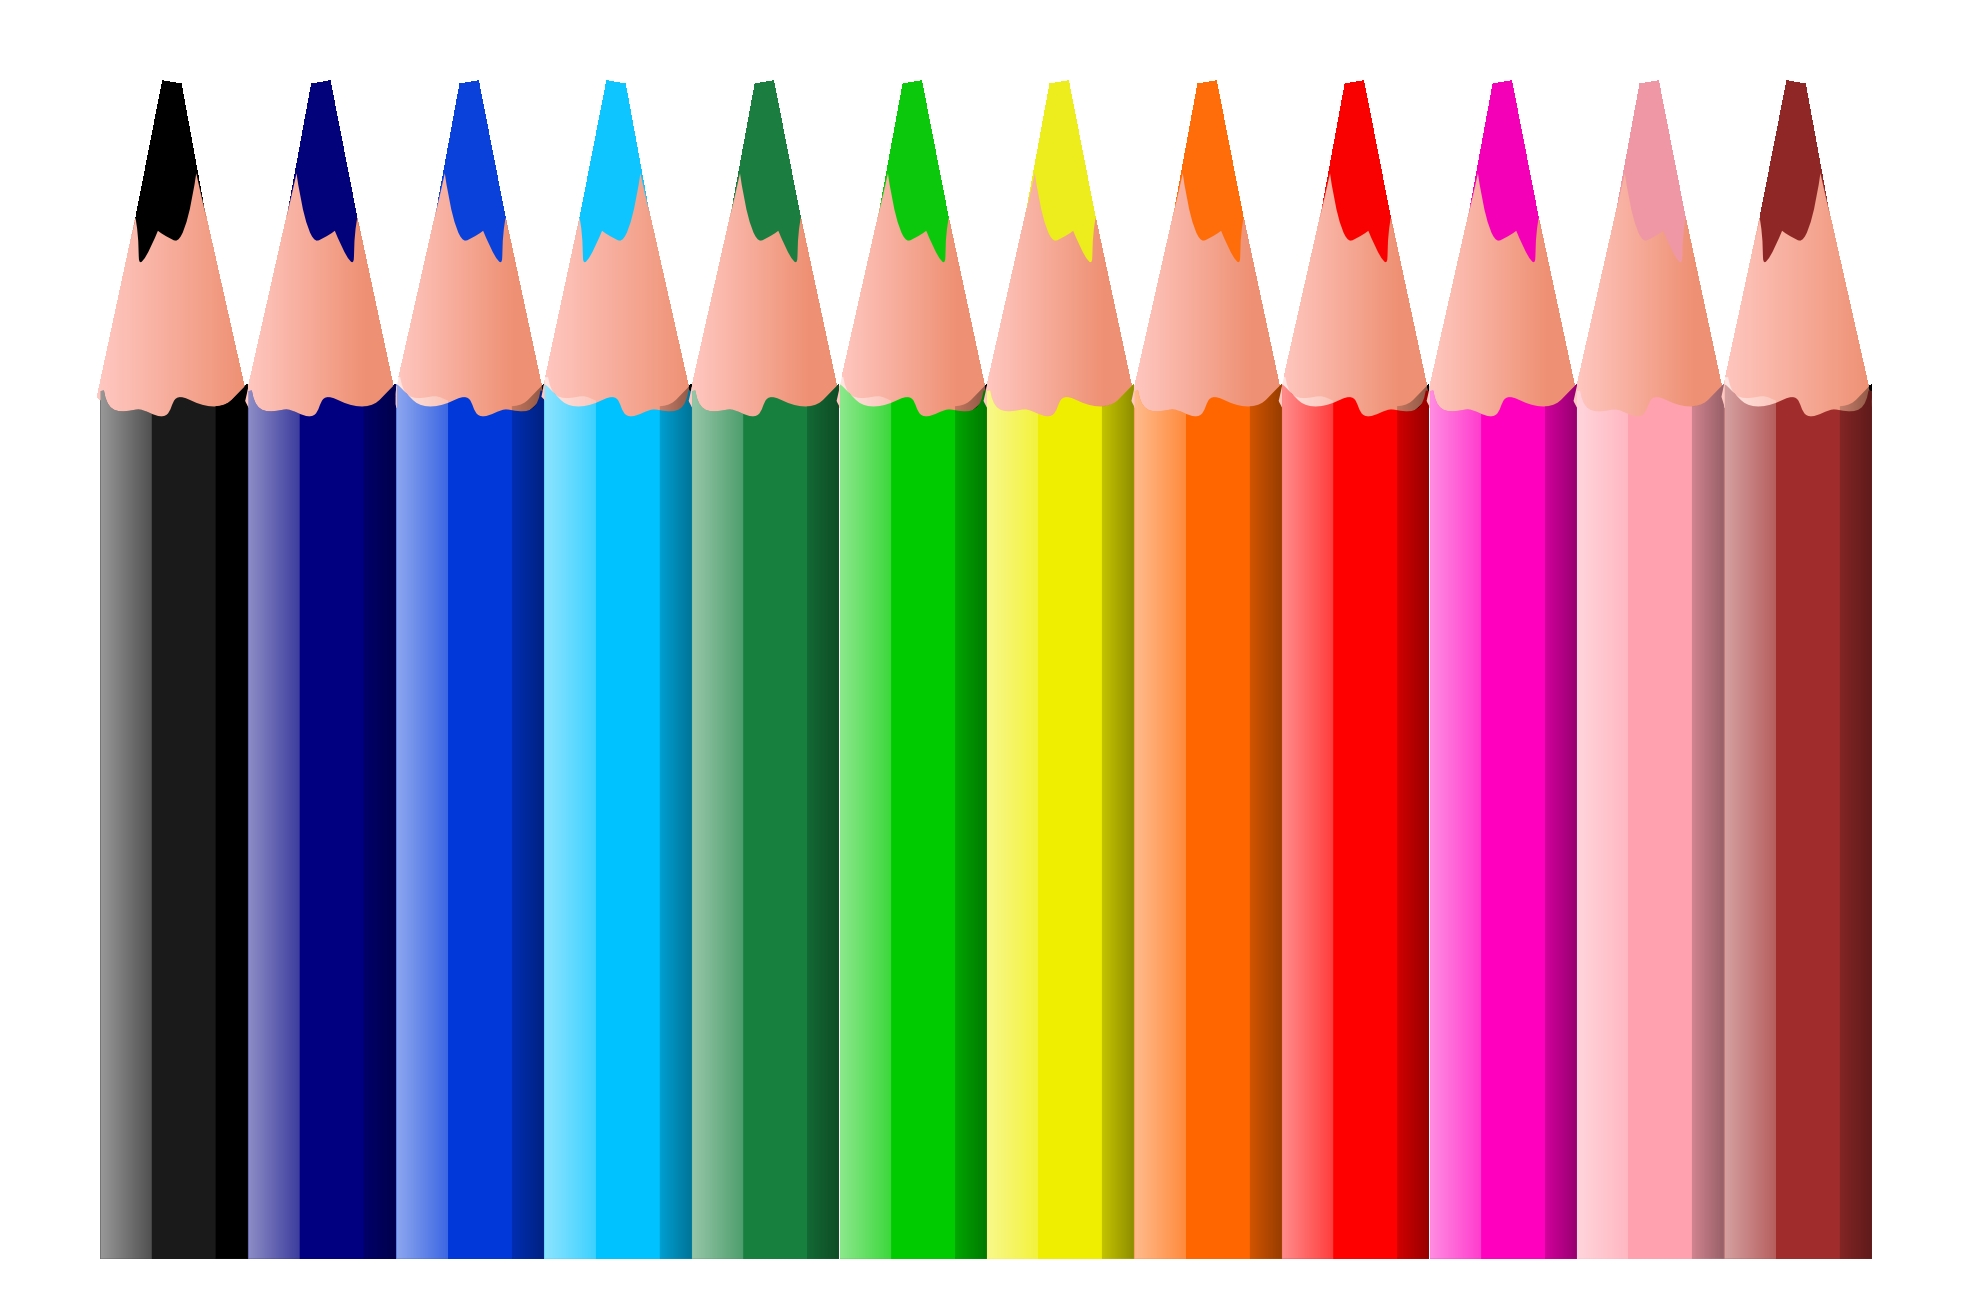 clipart crayola 20 free Cliparts | Download images on ...Crayola Markers Images Clipart